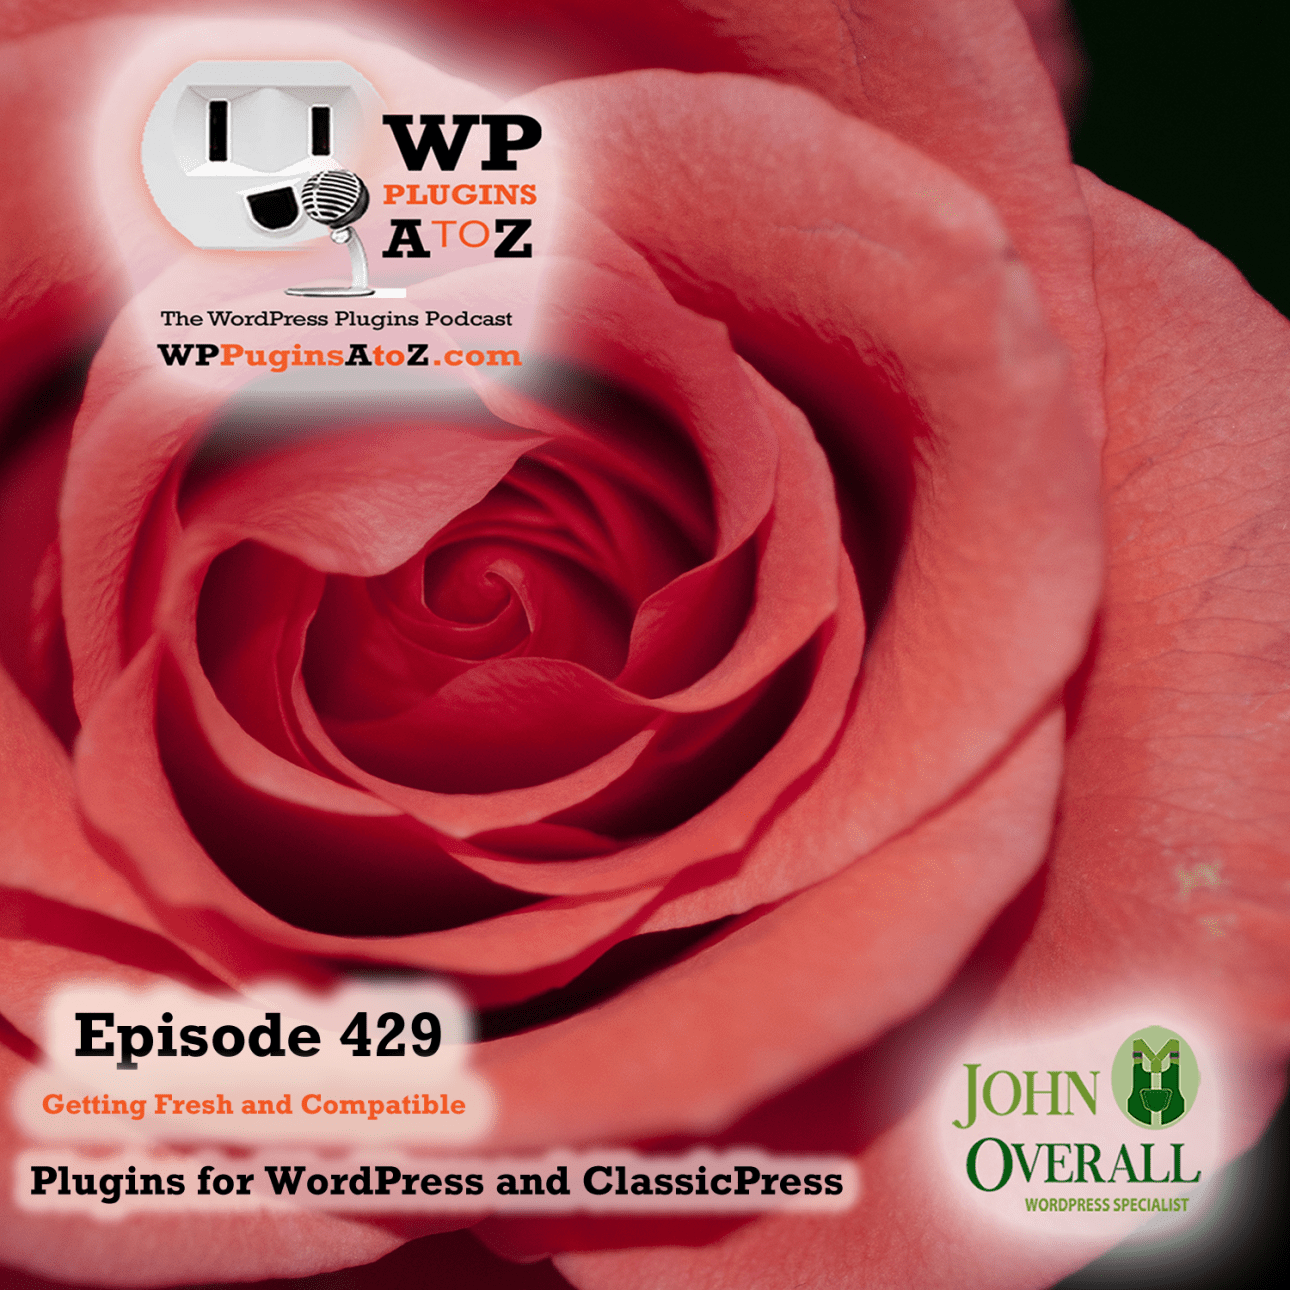 It's Episode 429 and I've got plugins for Form Caching, Plugin Compatibility, Elementor Addon and ClassicPress Options. It's all coming up on WordPress Plugins A-Z!